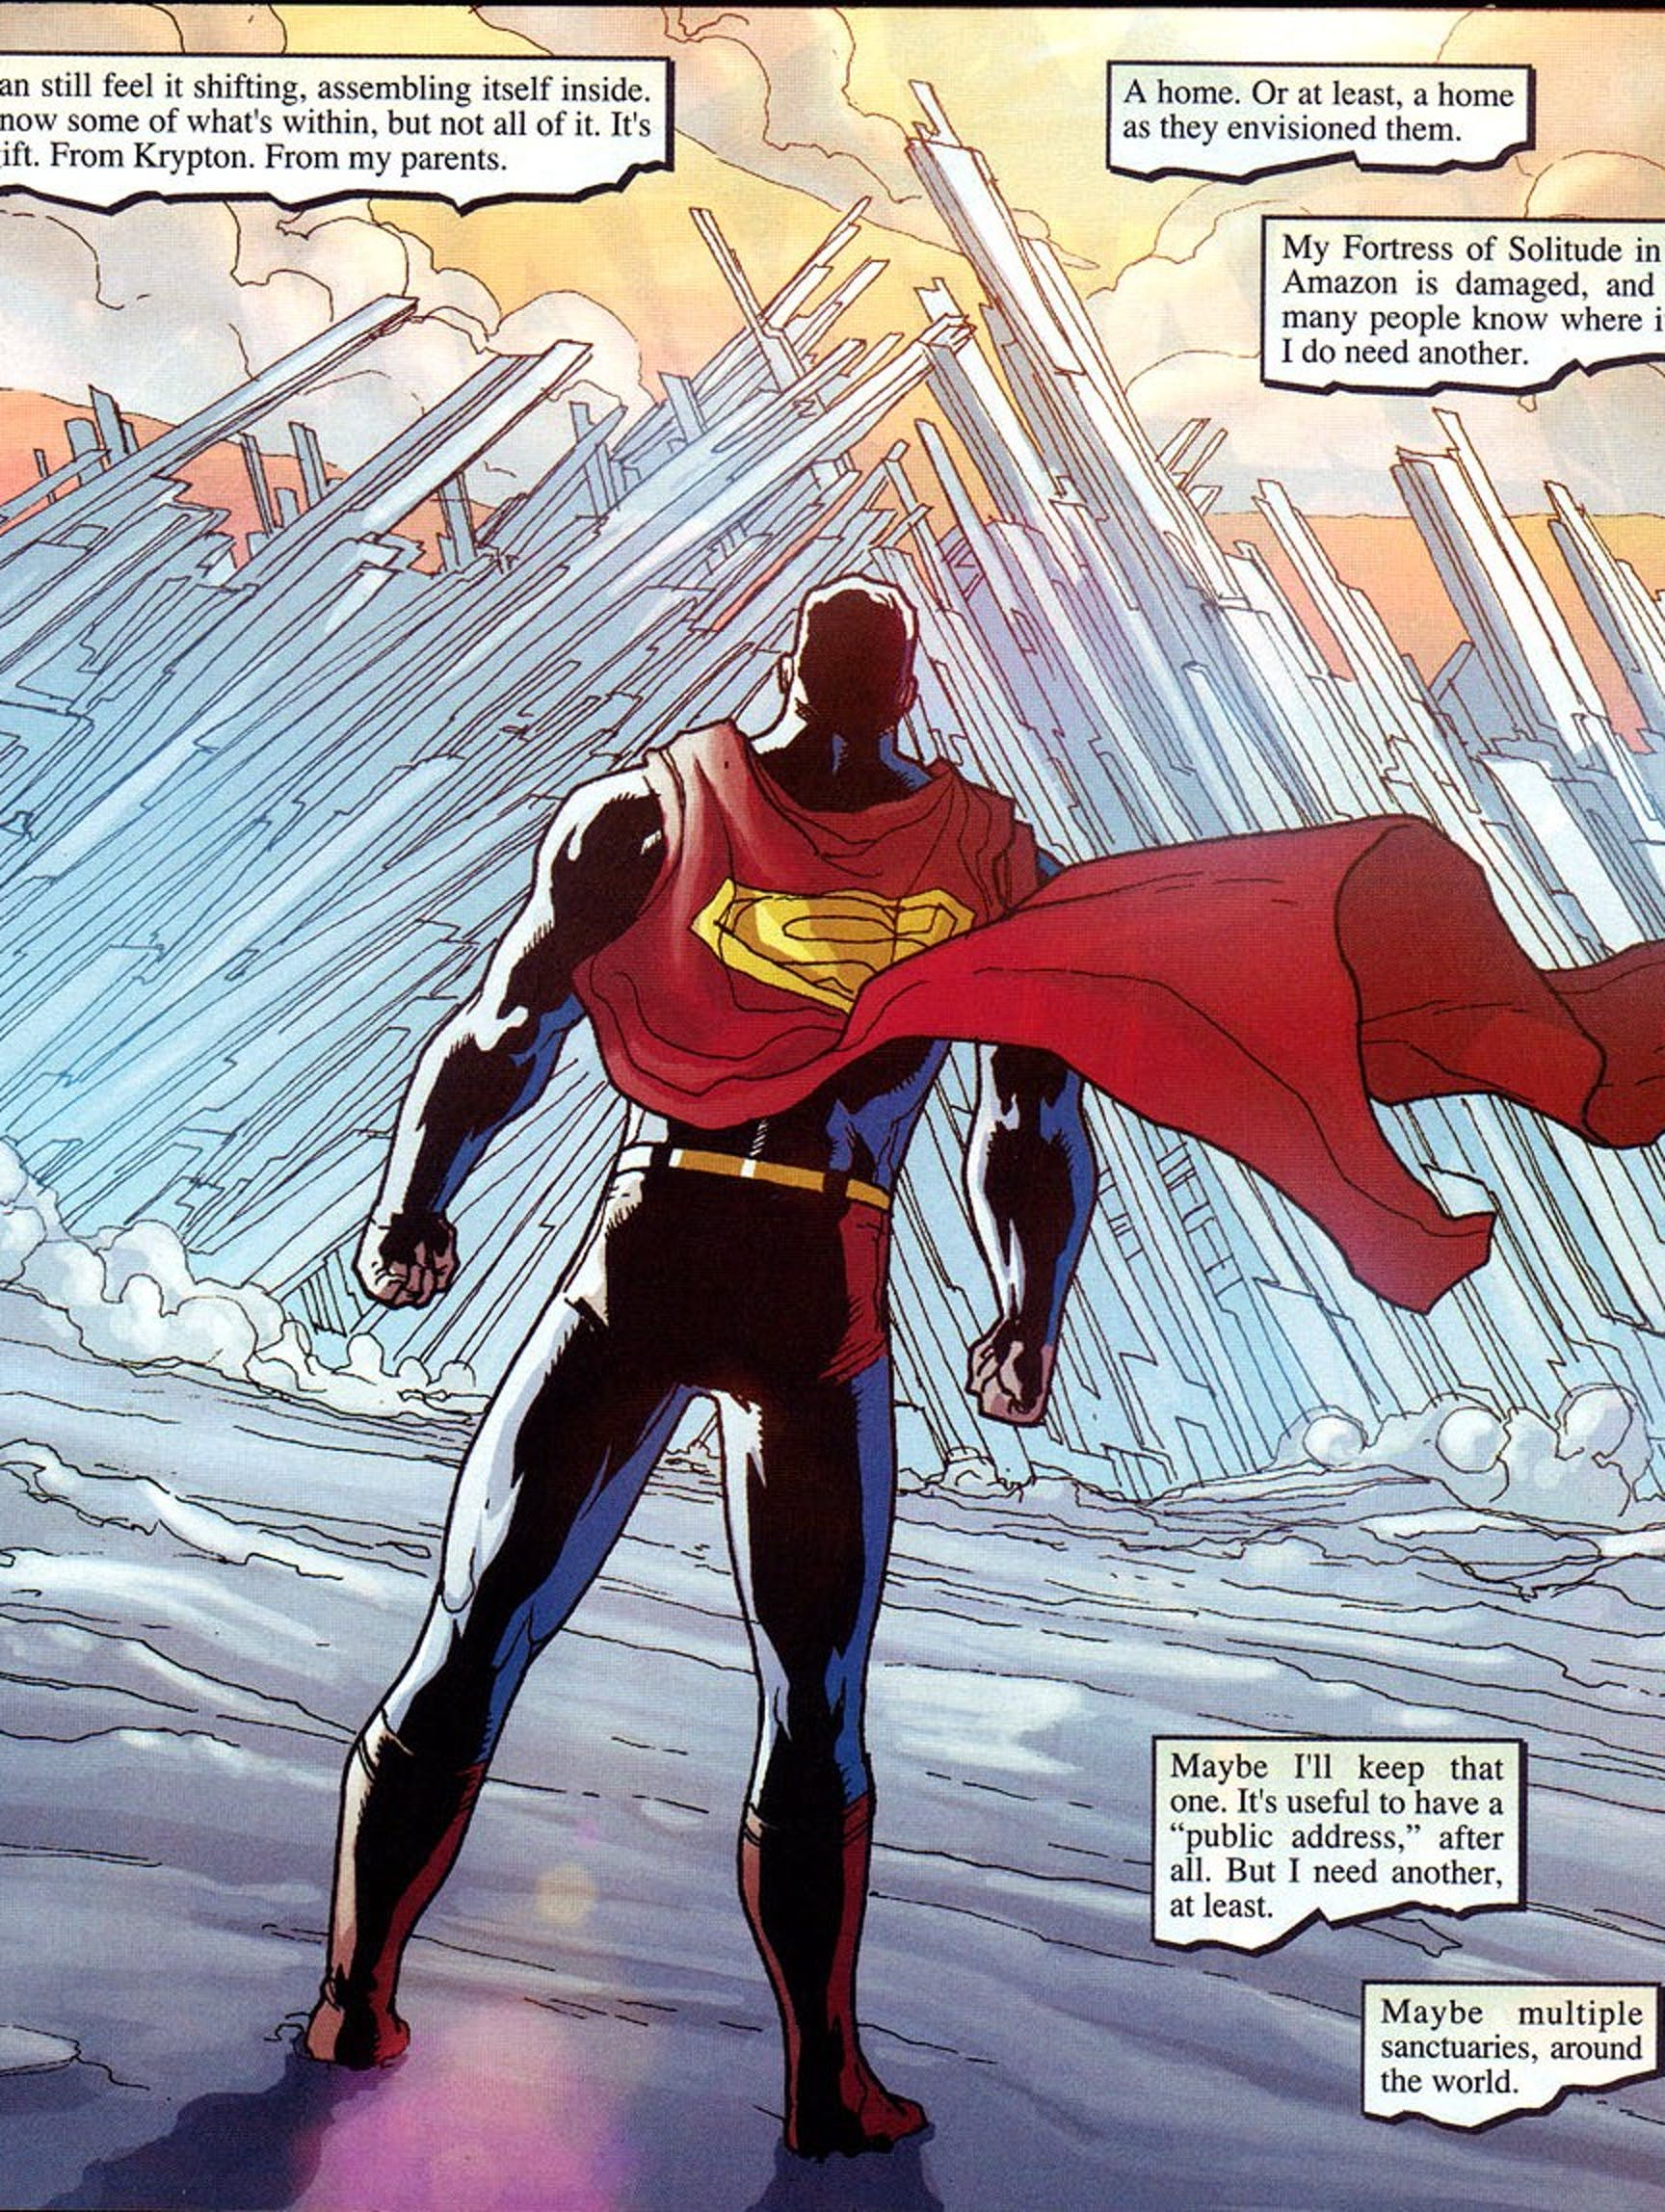 Superman Fortress of Solitude